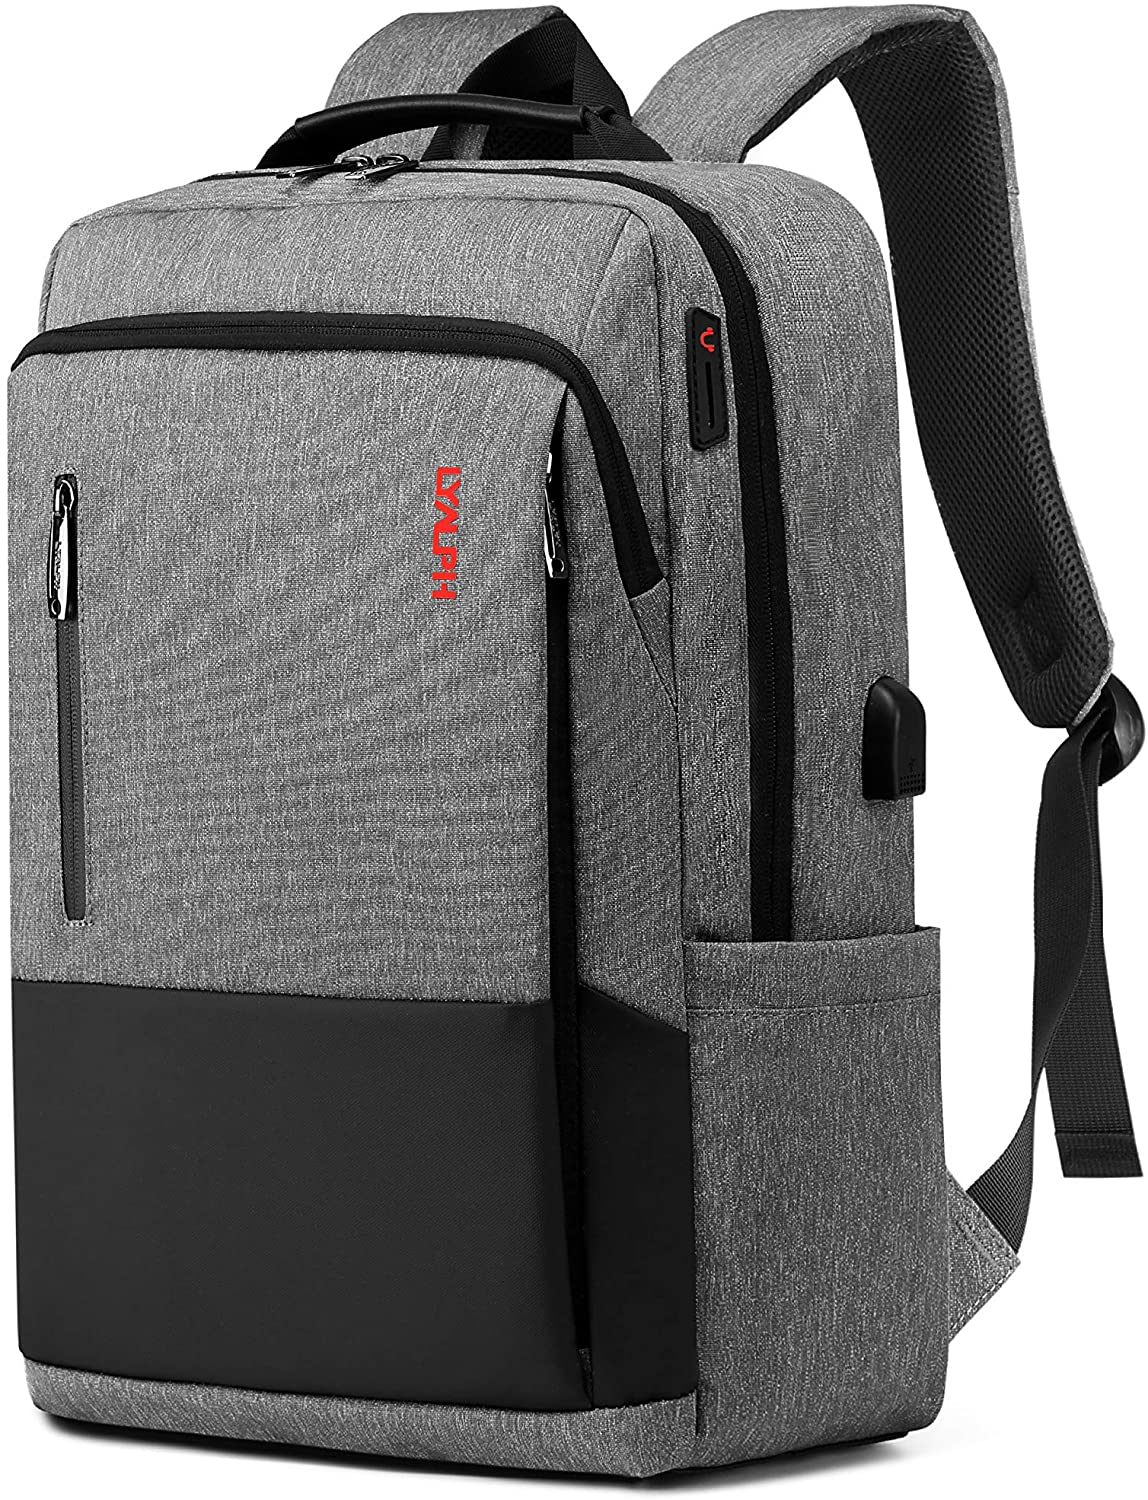 Laptop Backpack For Travel,USB Charging Port,Water Resistant Fit 17 Inch